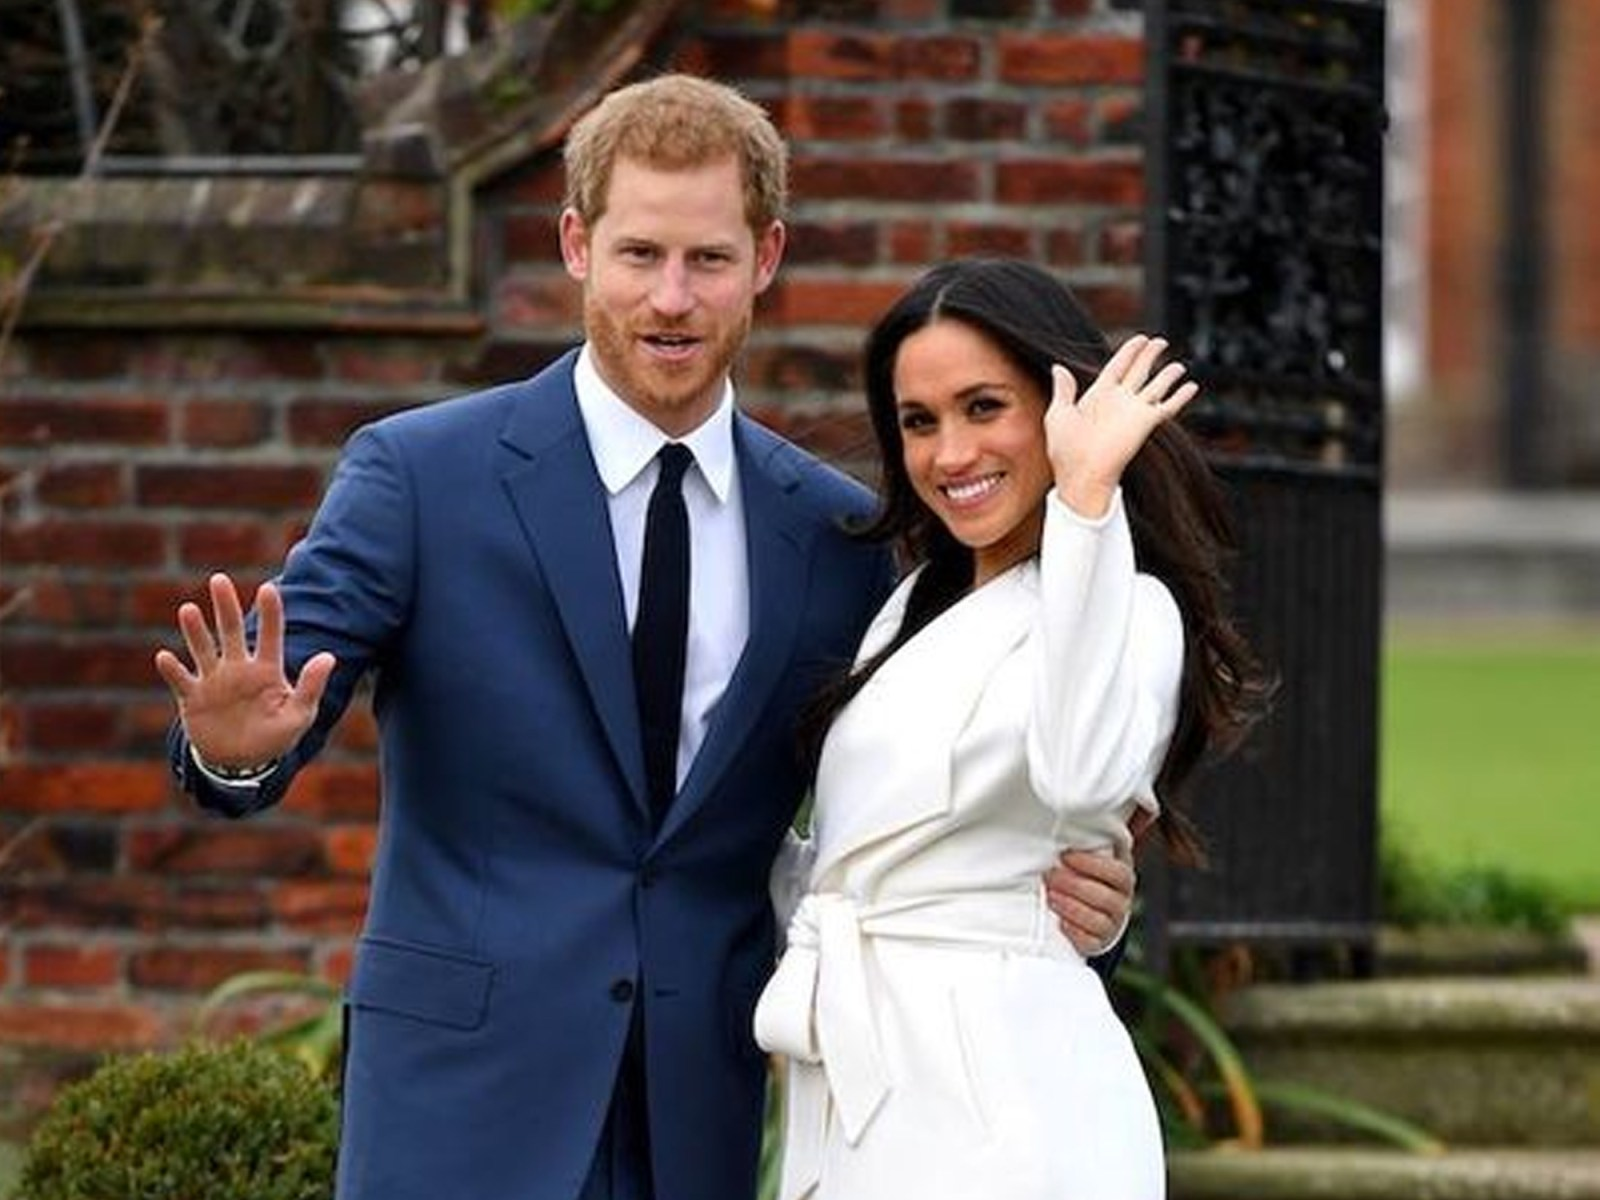 The royal wedding 2018 is highly anticipated, and with good reason. Prince Harry and Meghan Markle are the couple everyone strives to be like. Thankfully the date is set, and this is everything you need to know!